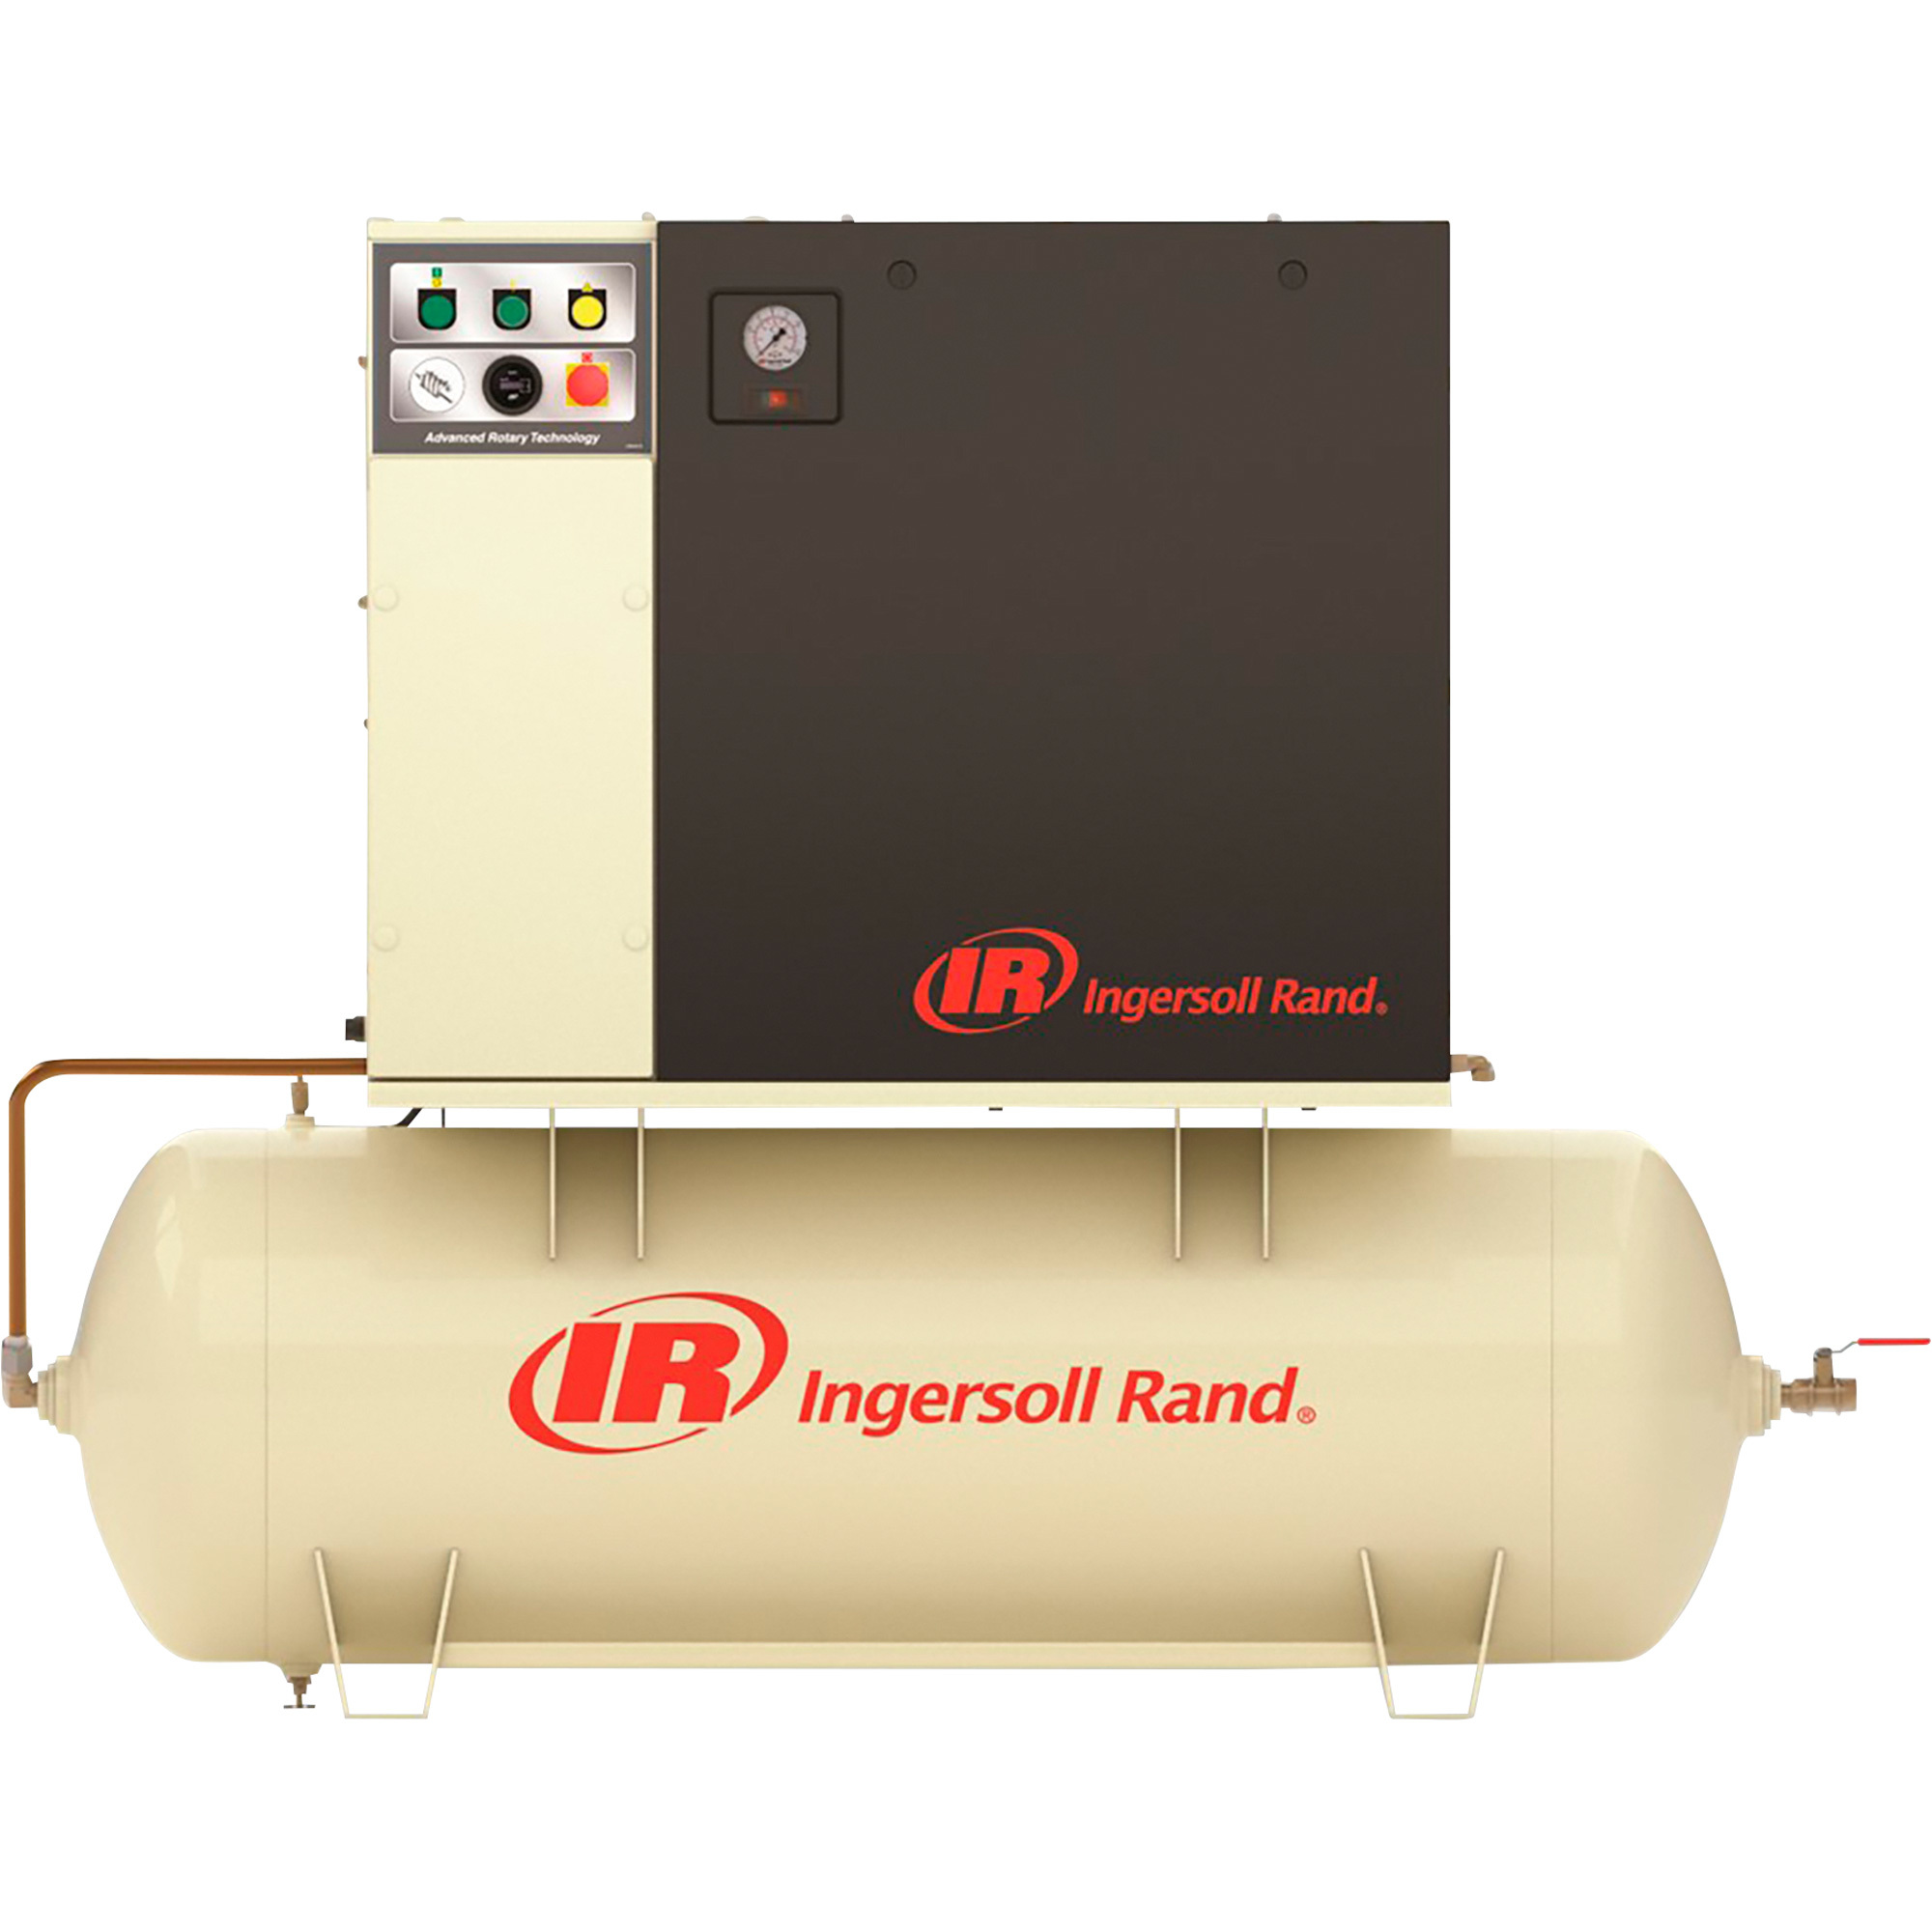 Ingersoll Rand Rotary Screw Compressor 230 Volts 3